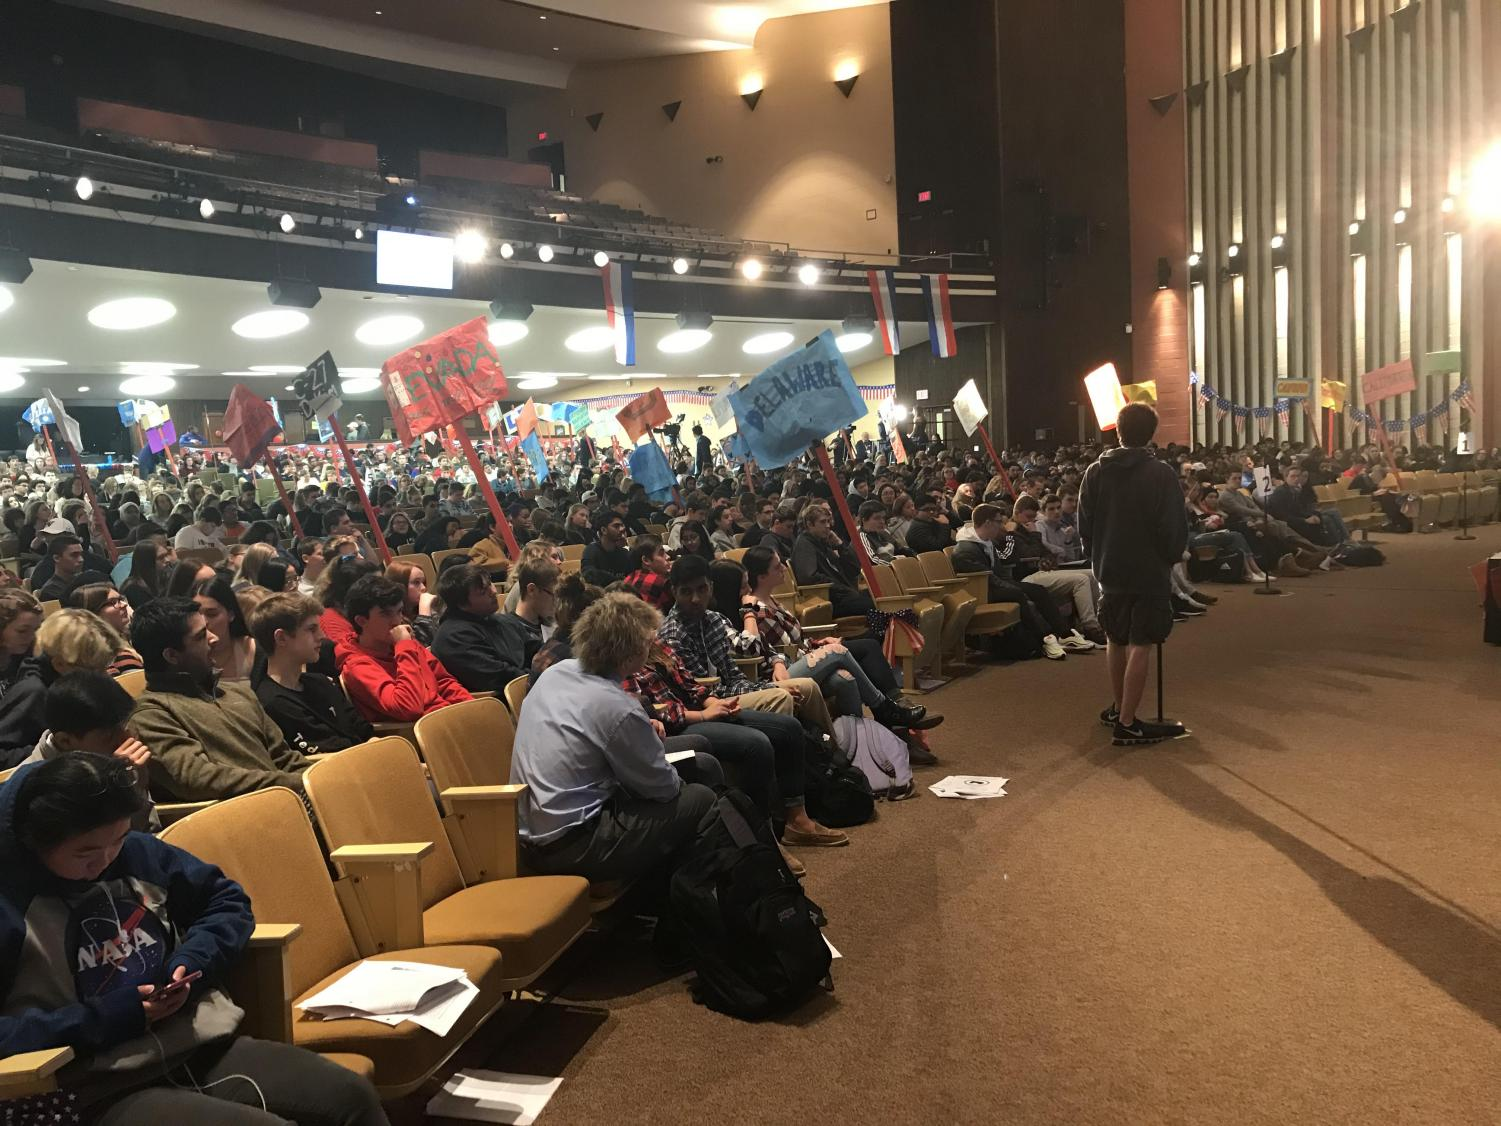 The NPHS auditorium was buzzing with politics on Fri., Jan 3 as students conducted the 2020 Mock Democratic National Convention.